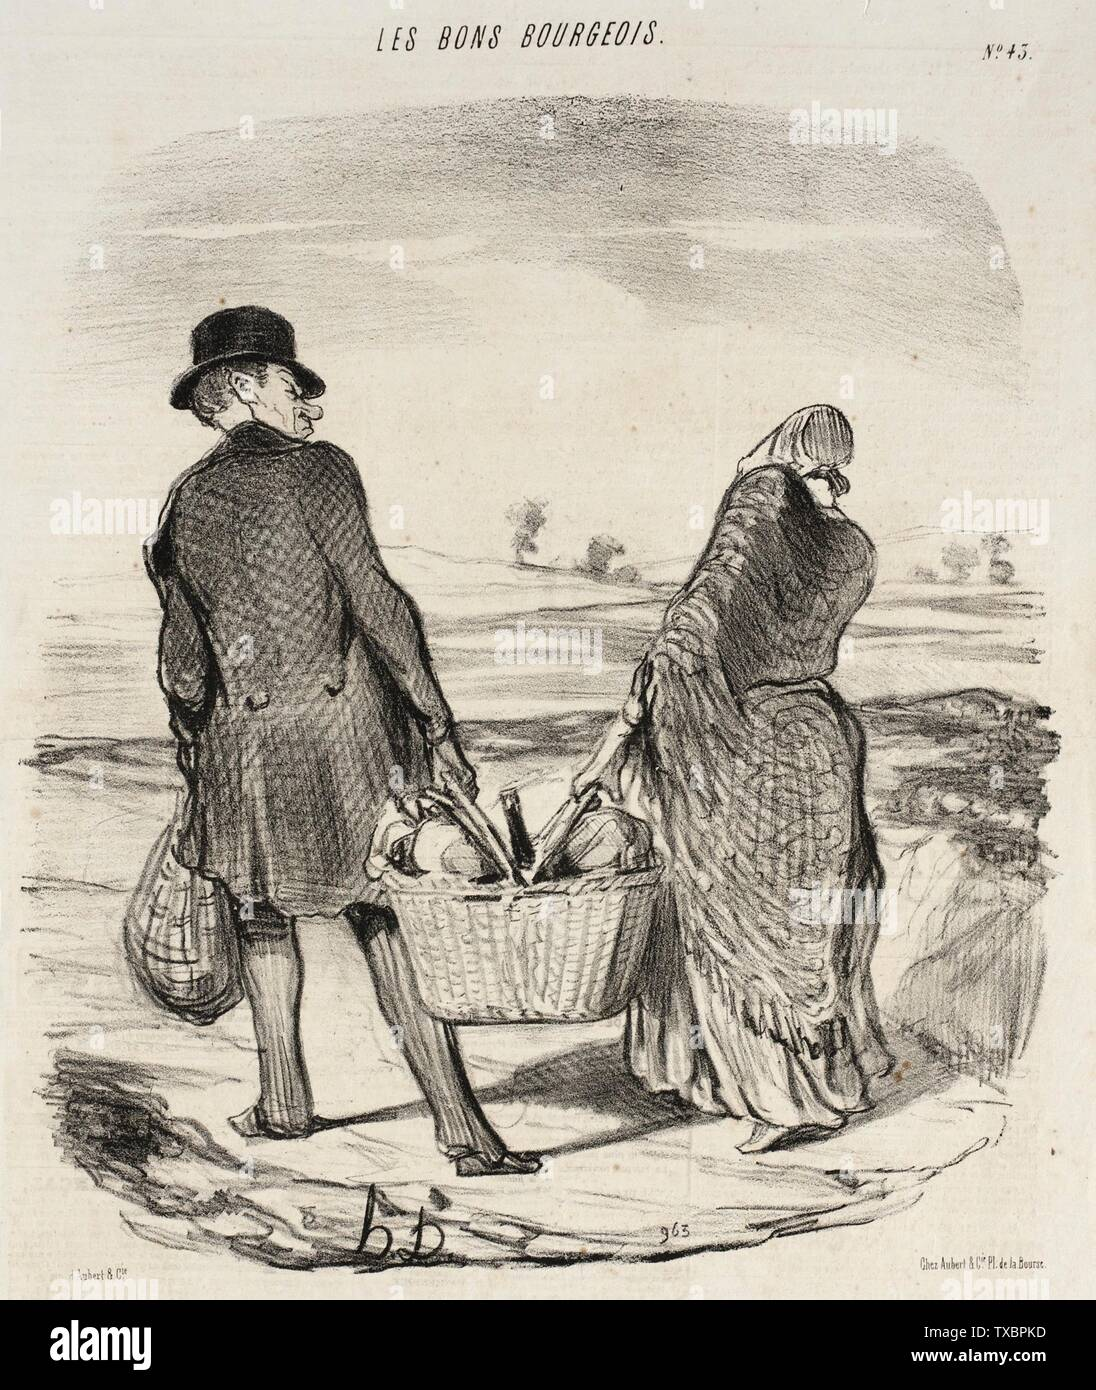 'Plus souvent que tu m'attraperas encore à satisfaire ta fantasie...; English:  France, 1847 Series: Les Bons bourgeois, no. 43 Periodical: Le Charivari, 8 May 1847 Prints; lithographs Lithograph Gift of Mr. and Mrs. Stanley Talpis (54.71.119) Prints and Drawings; 1847date QS:P571,+1847-00-00T00:00:00Z/9; ' - Stock Image